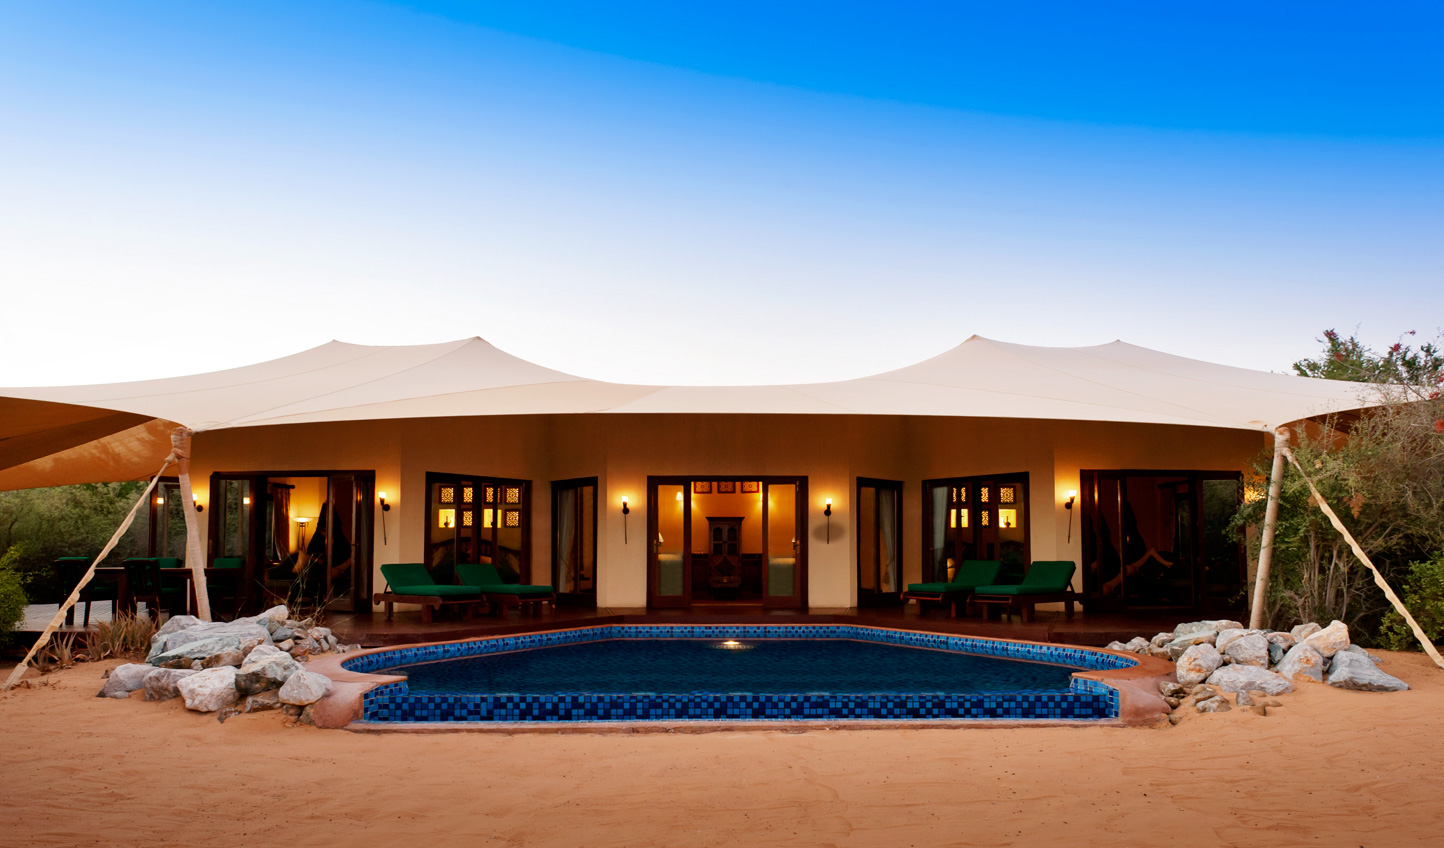 Desert camping at its most luxurious at Al Maha